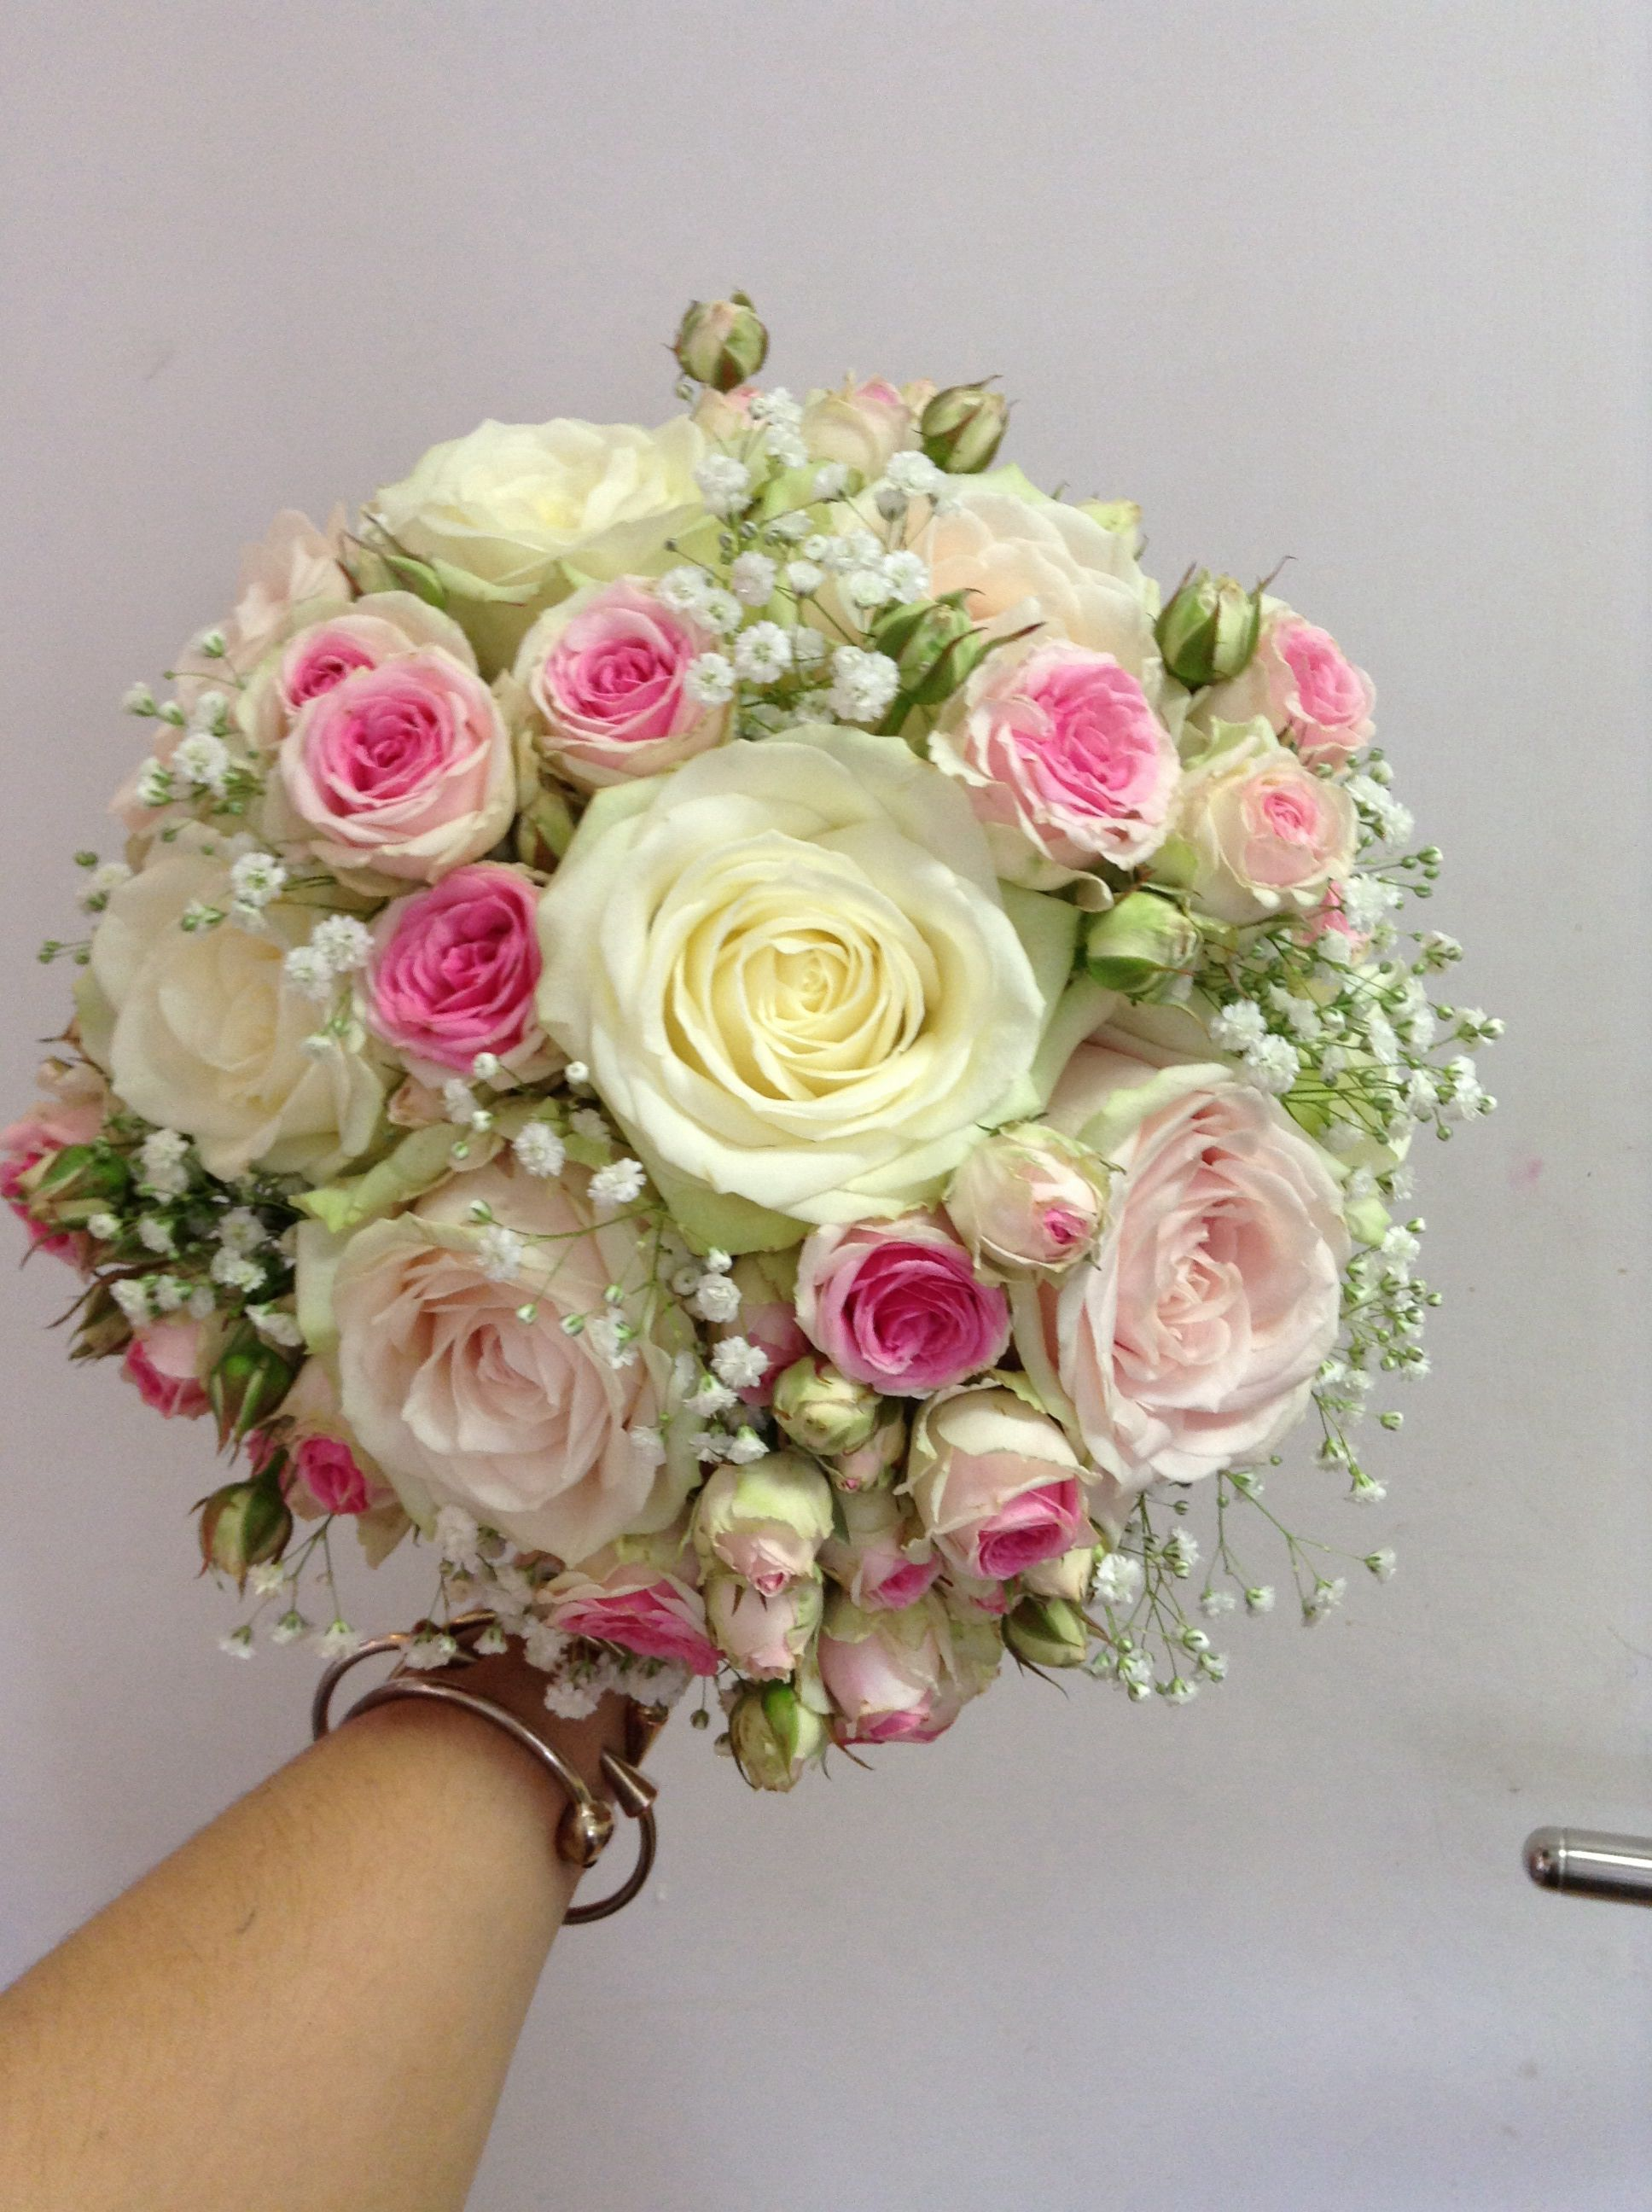 Shabby Chic Y Vintage Es Lo Mismo Vintage Shabby Chic Bridal Bouquet Using Ivory Avalanche Pale Pink